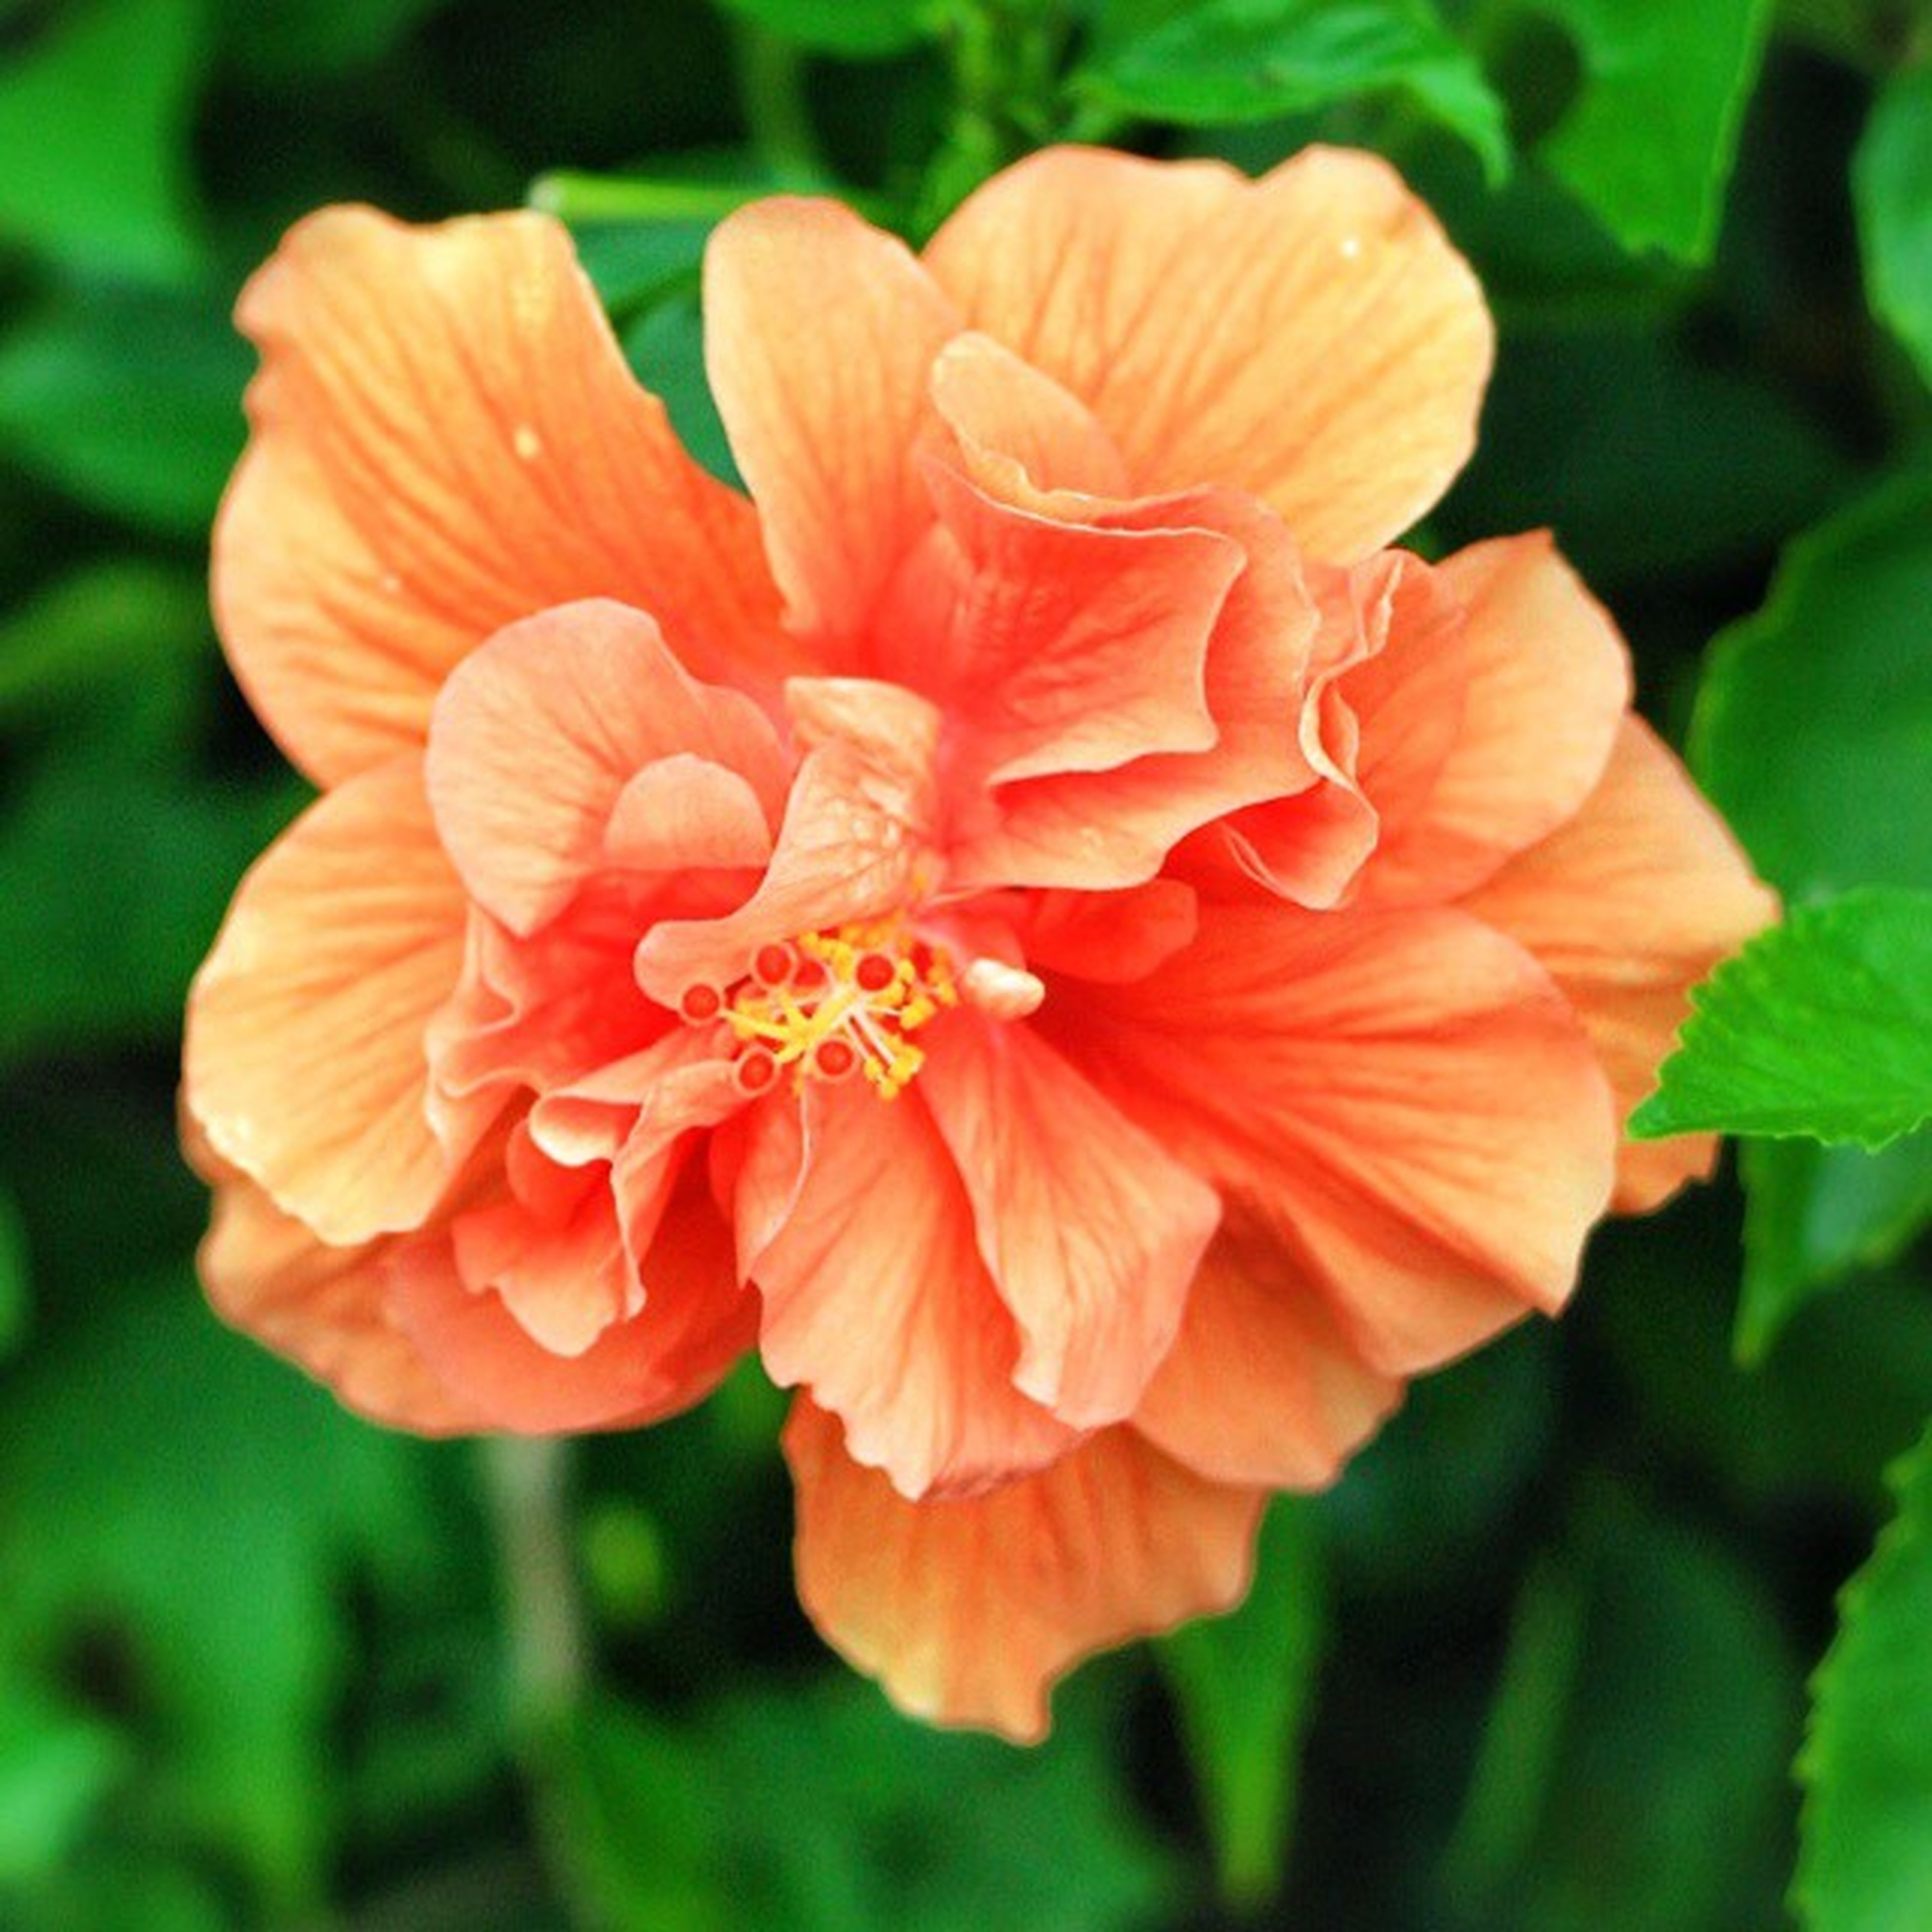 flower, petal, freshness, flower head, fragility, growth, beauty in nature, close-up, focus on foreground, blooming, nature, orange color, single flower, plant, park - man made space, in bloom, day, outdoors, no people, blossom